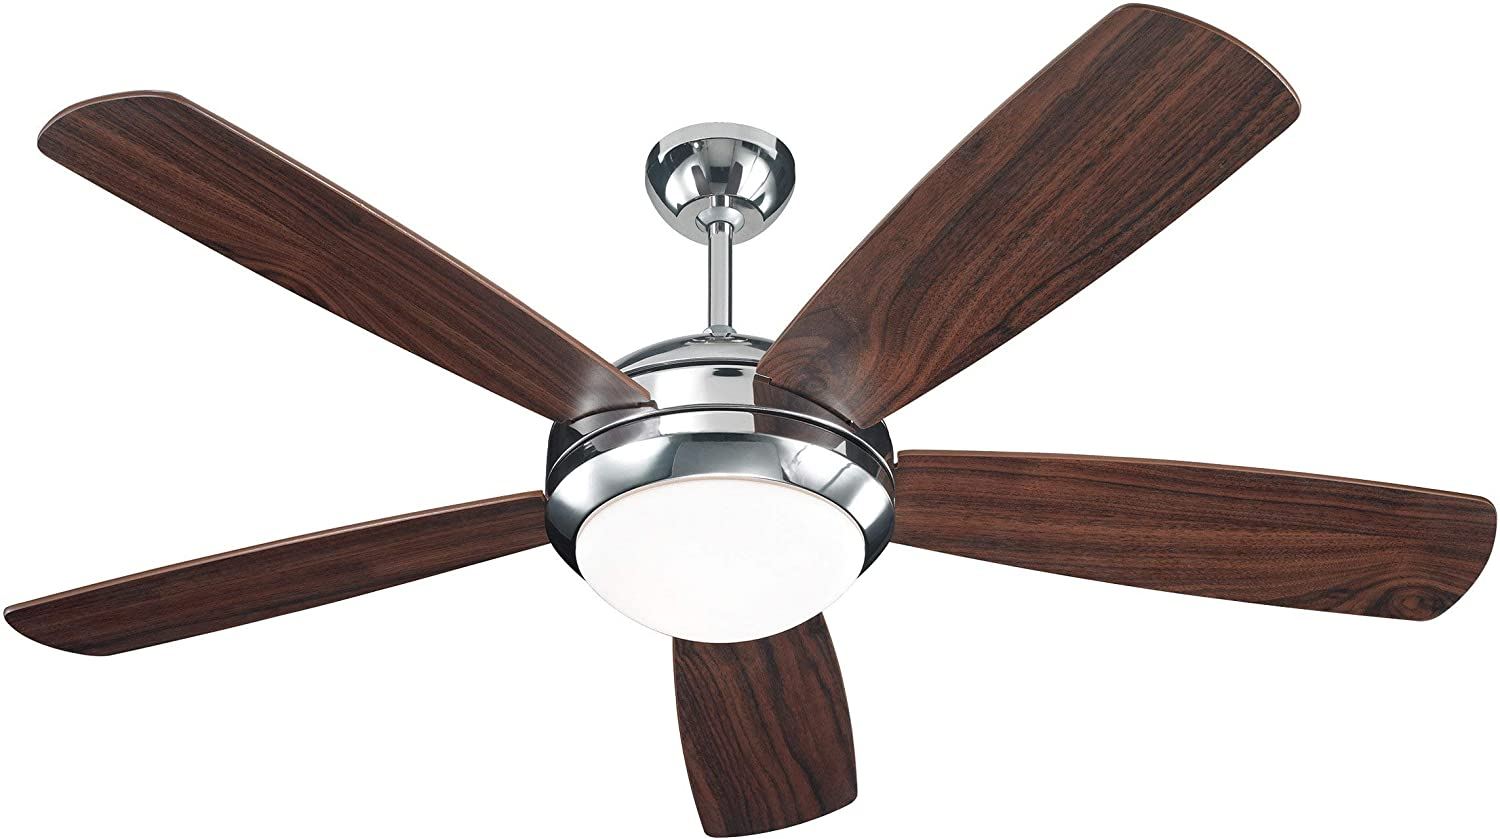 Top 6 Best Ceiling Fans With Lights Reviews in 2020 & Buying Guide 5